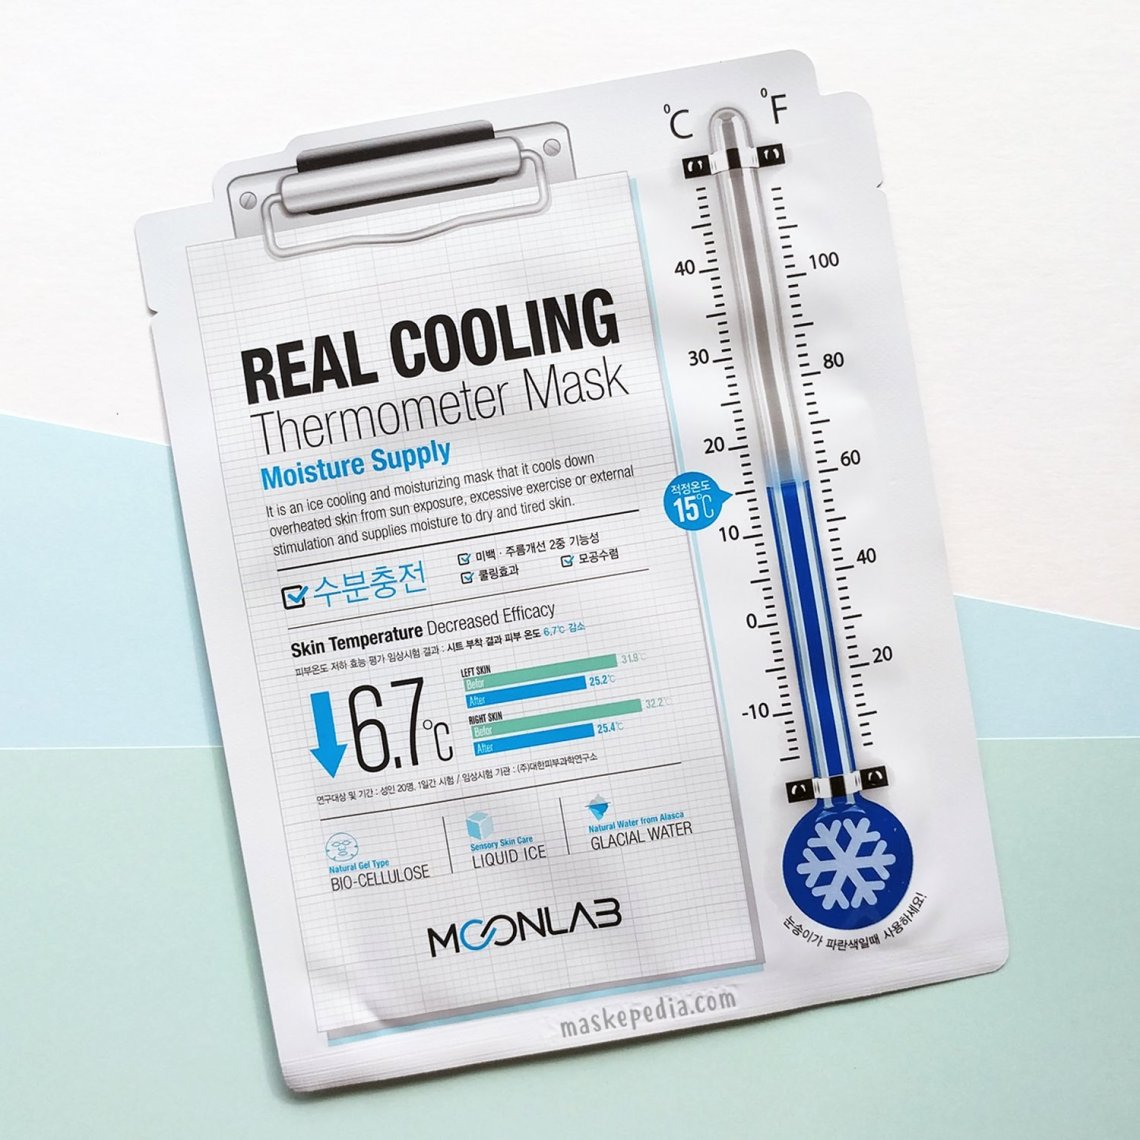 Moonlab Real Cooling Thermometer Mask Moisture Supply